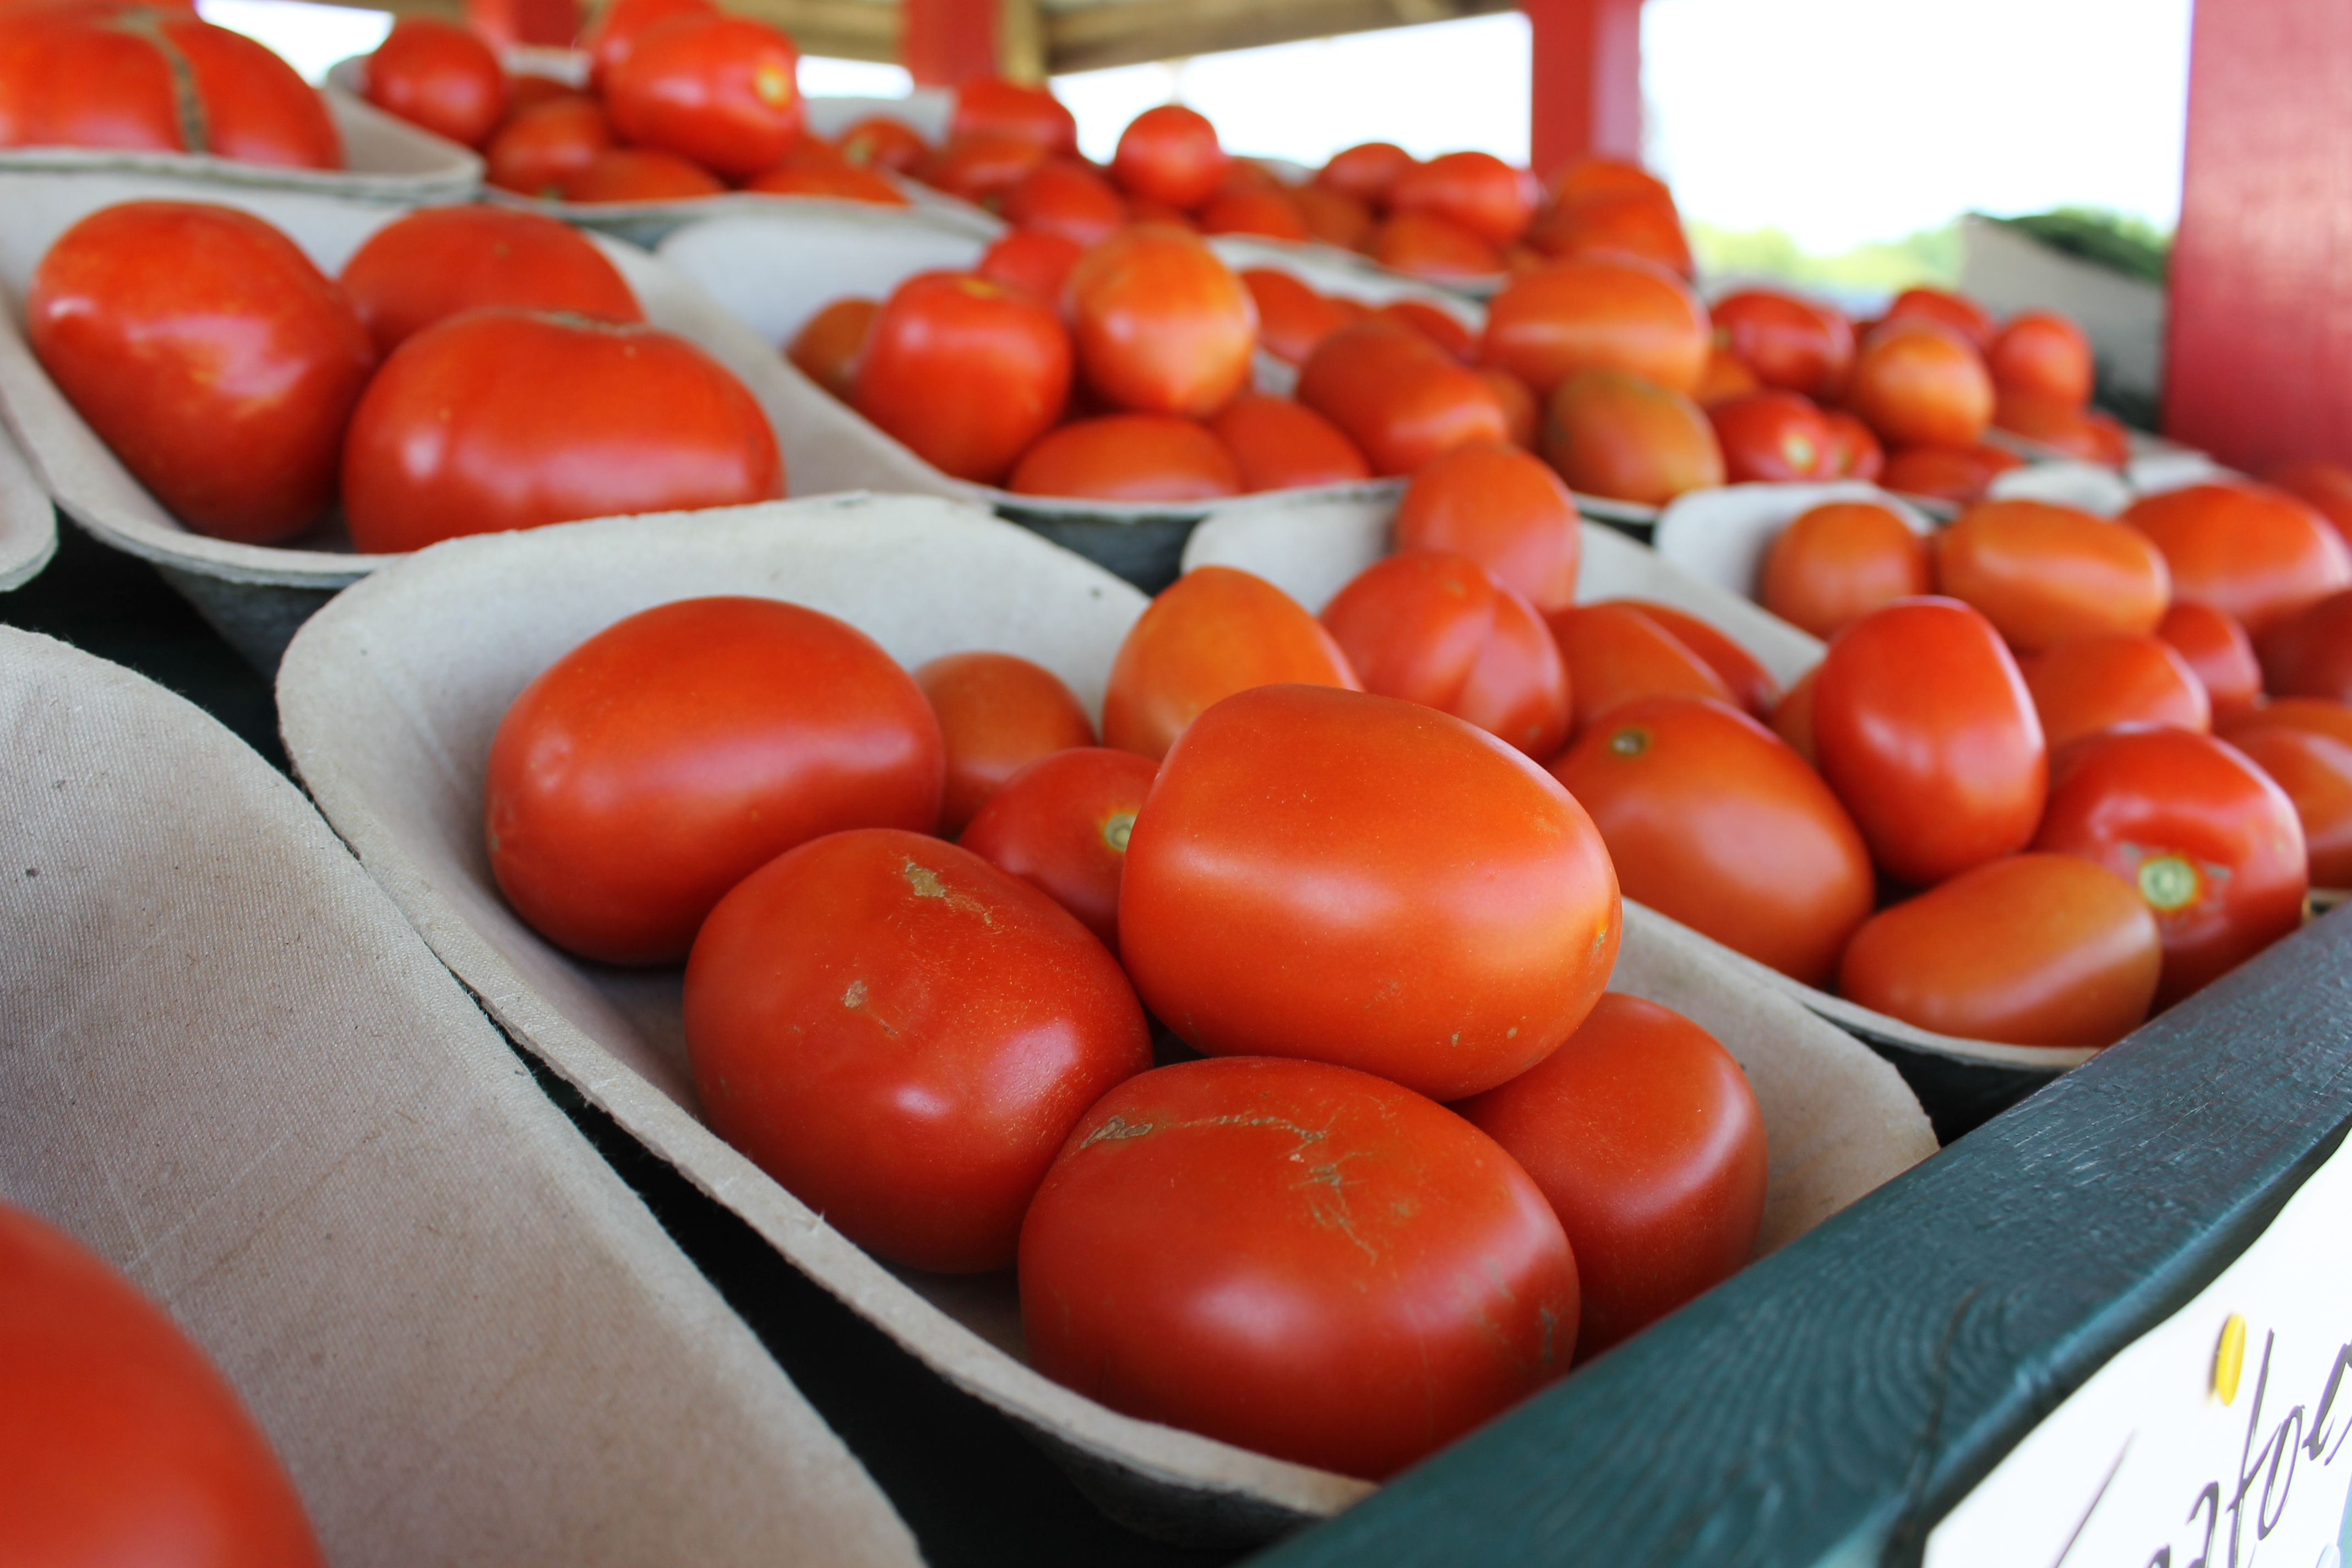 Tomatoes at Costa Farm